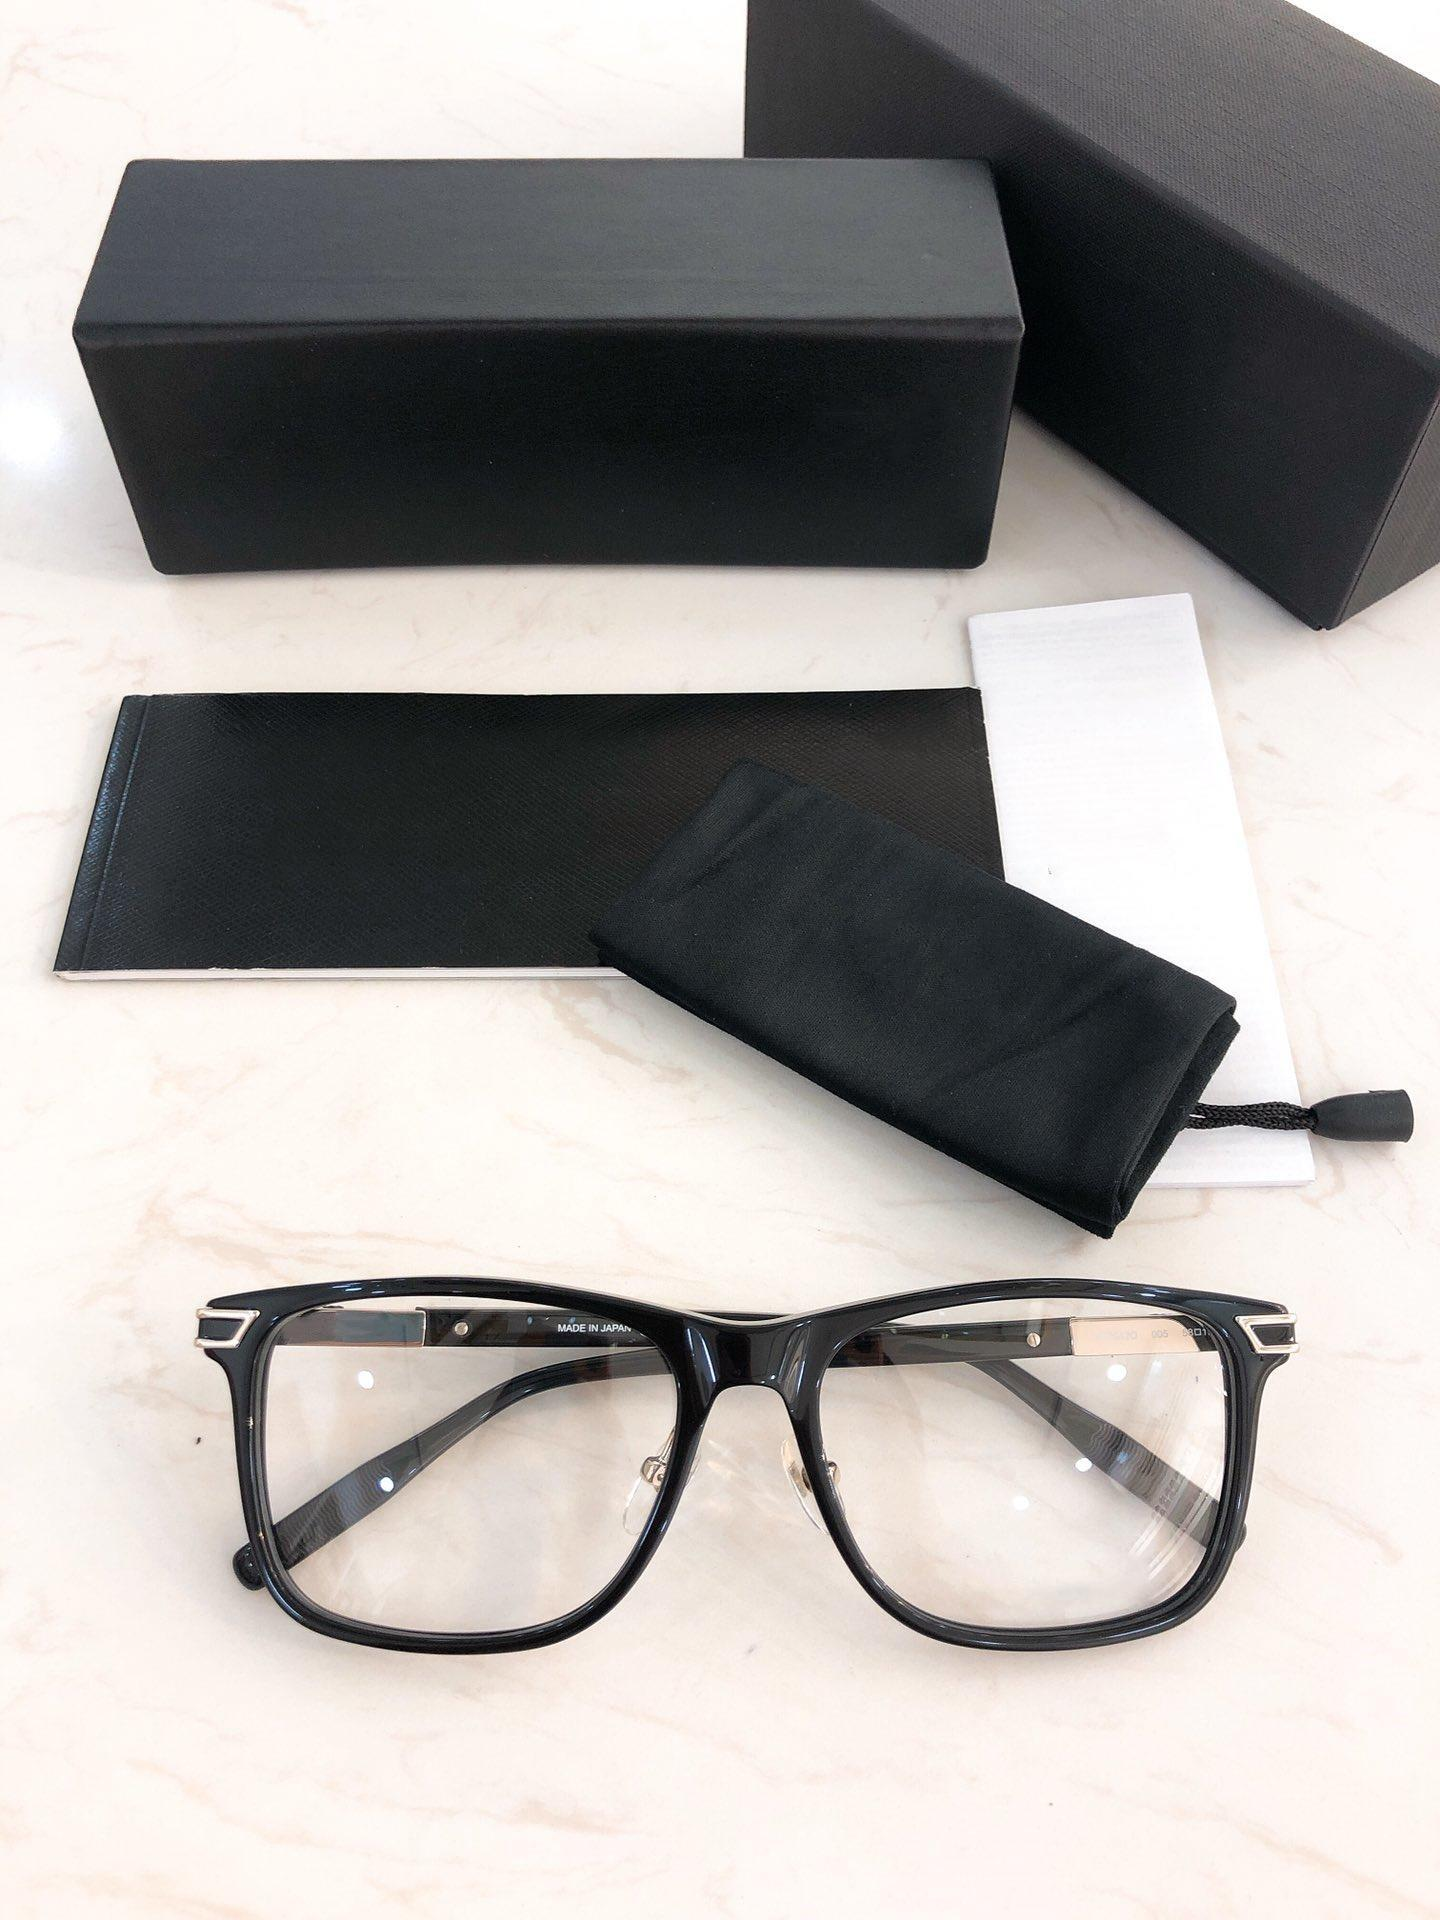 Designed Eyeglass Frame-2019 0042O Plate Spectacle Frame Quality Fashion Large Square High Frame Men's Glasses New Upeak